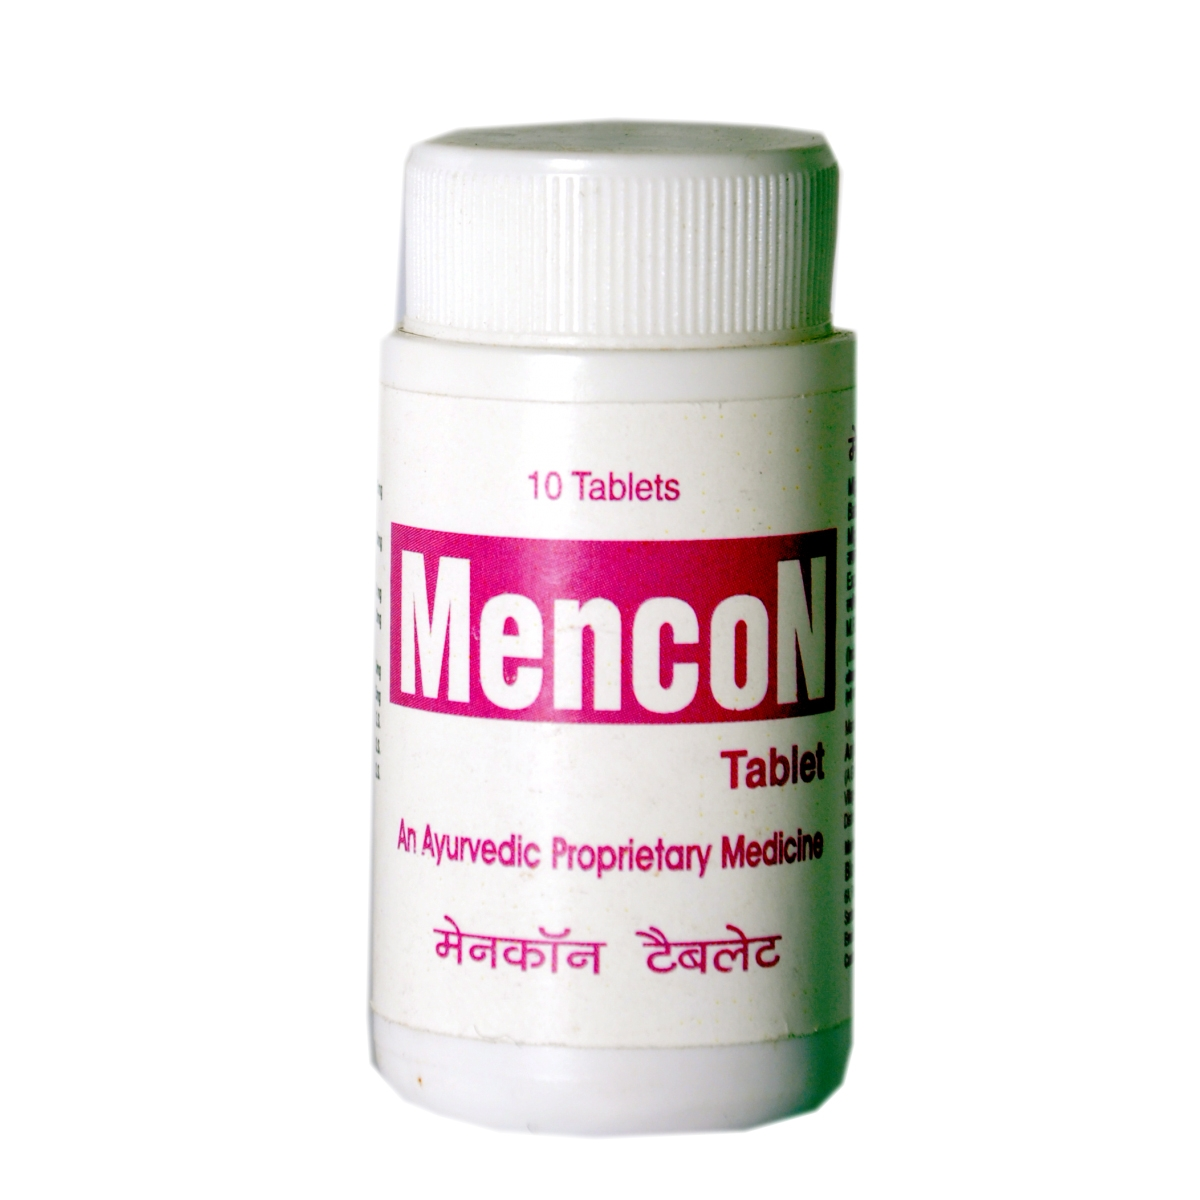 Mencon Tablet In Una